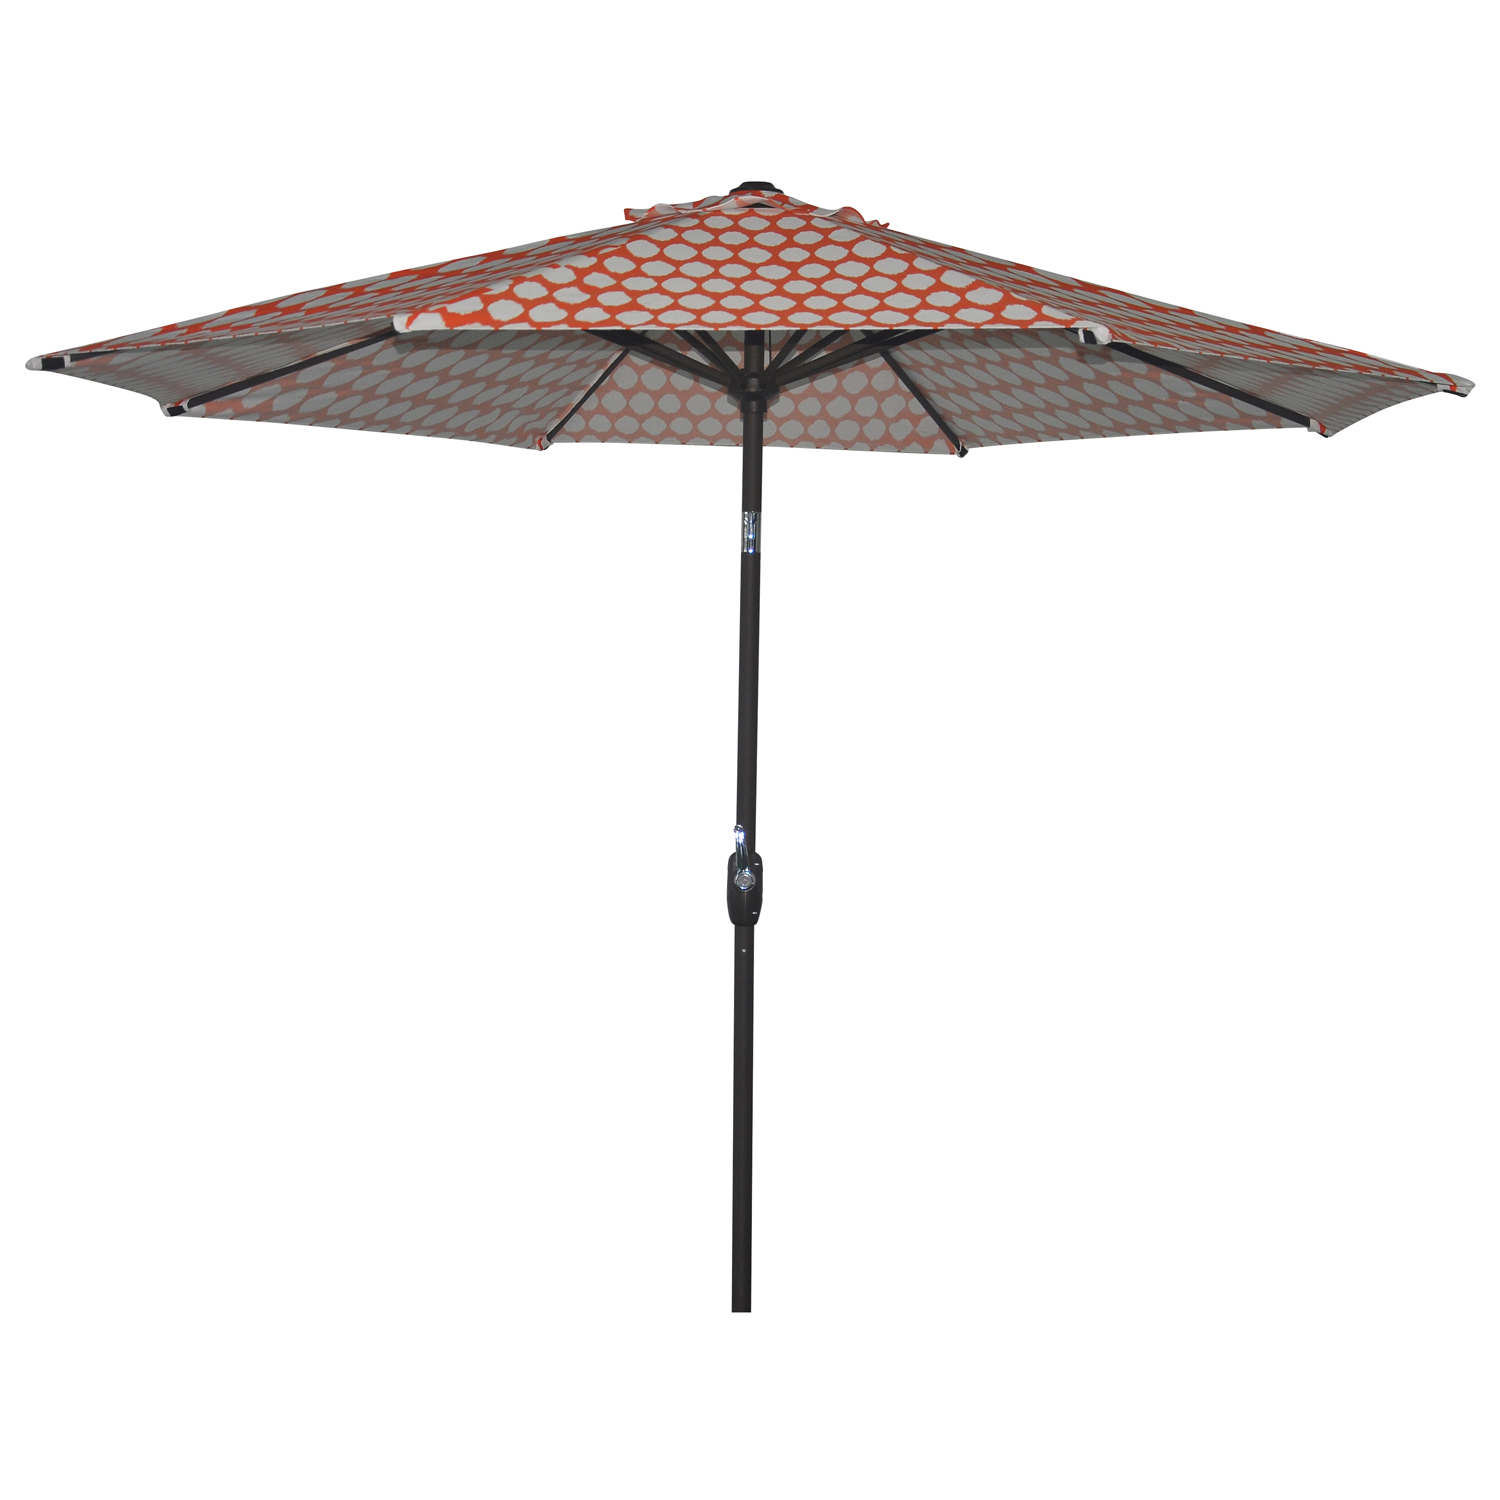 Better Homes and Gardens 9' Printed Market Umbrella, Ikat Coral by NINGBO EVERLUCK OUTDOOR PRODUCTS MANUFACTING CO LTD